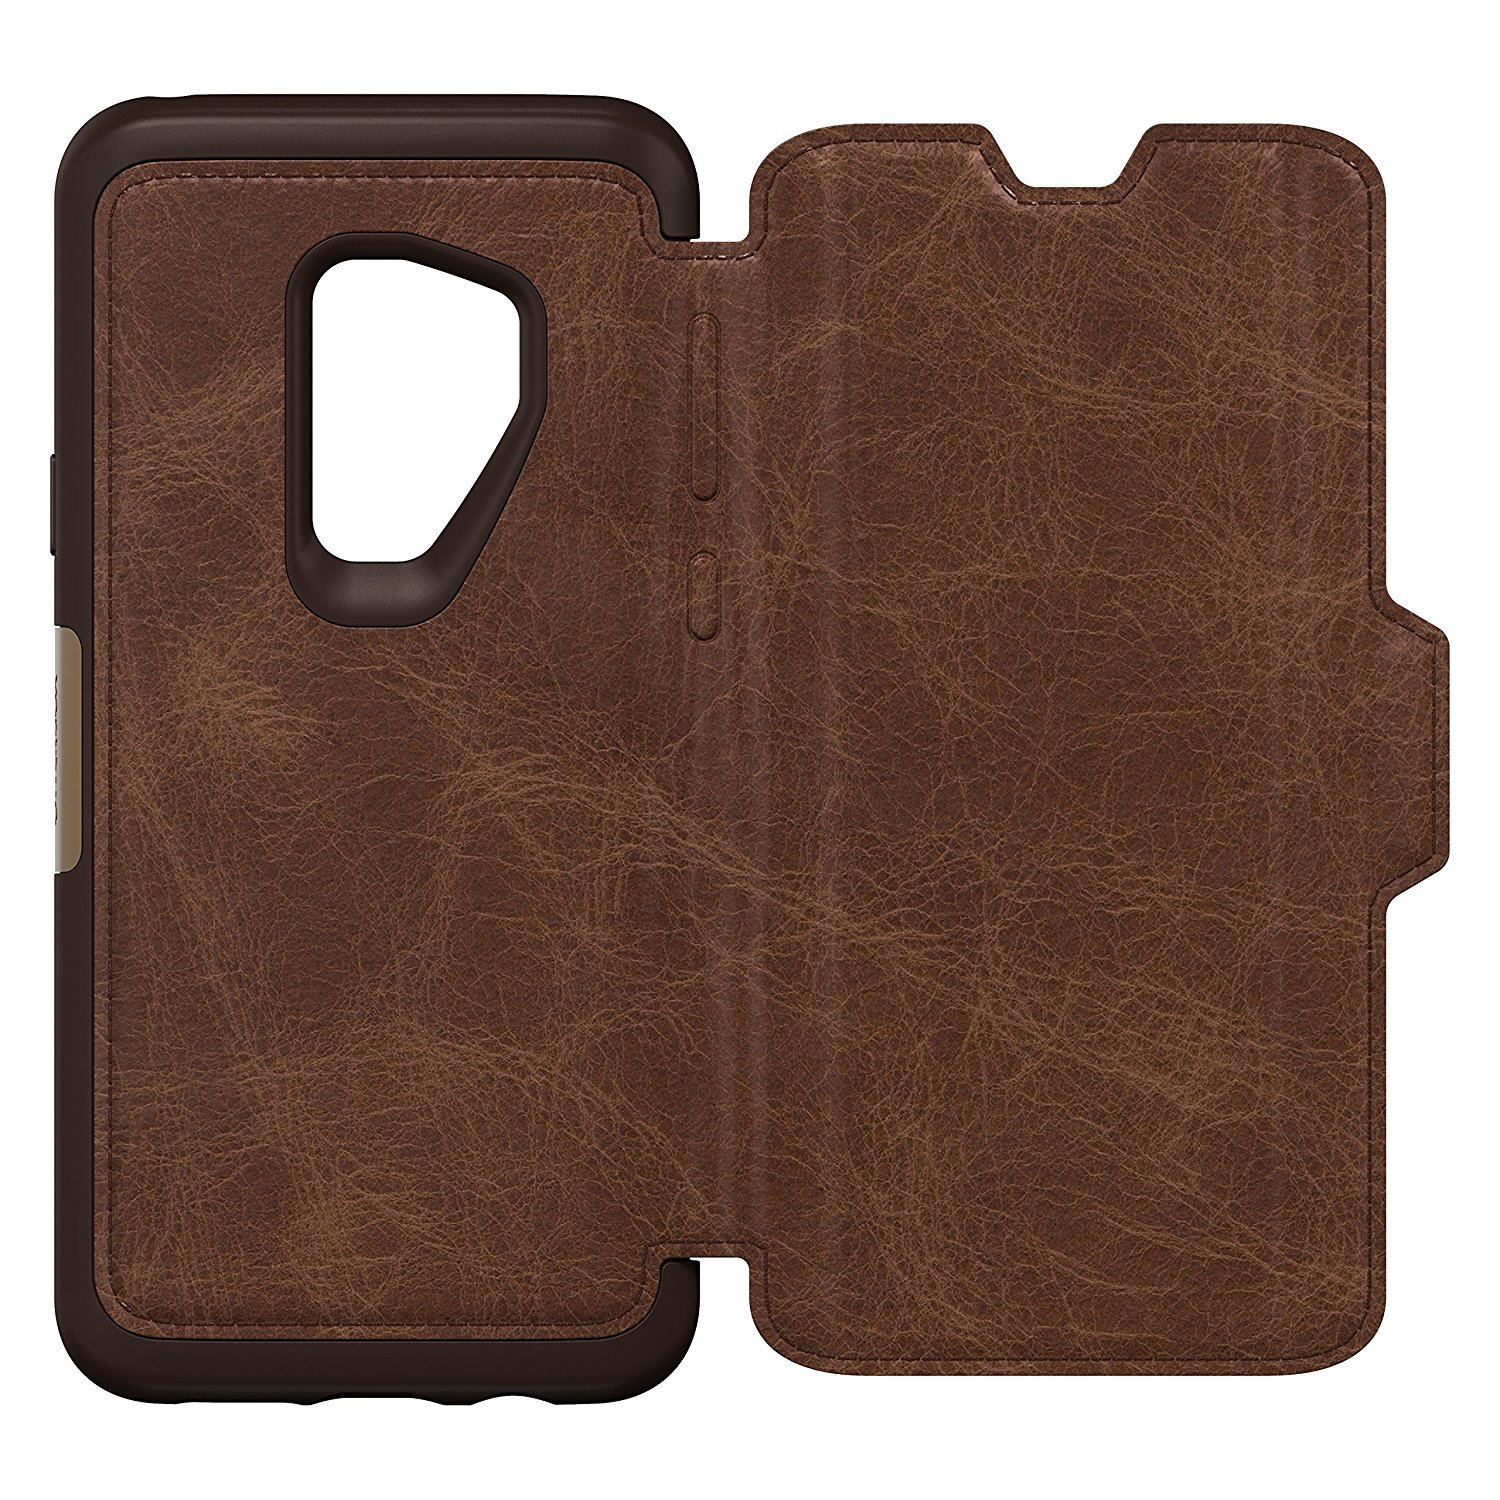 outlet store beb39 4285f OtterBox Strada Samsung Galaxy S9 Plus Case - Brown